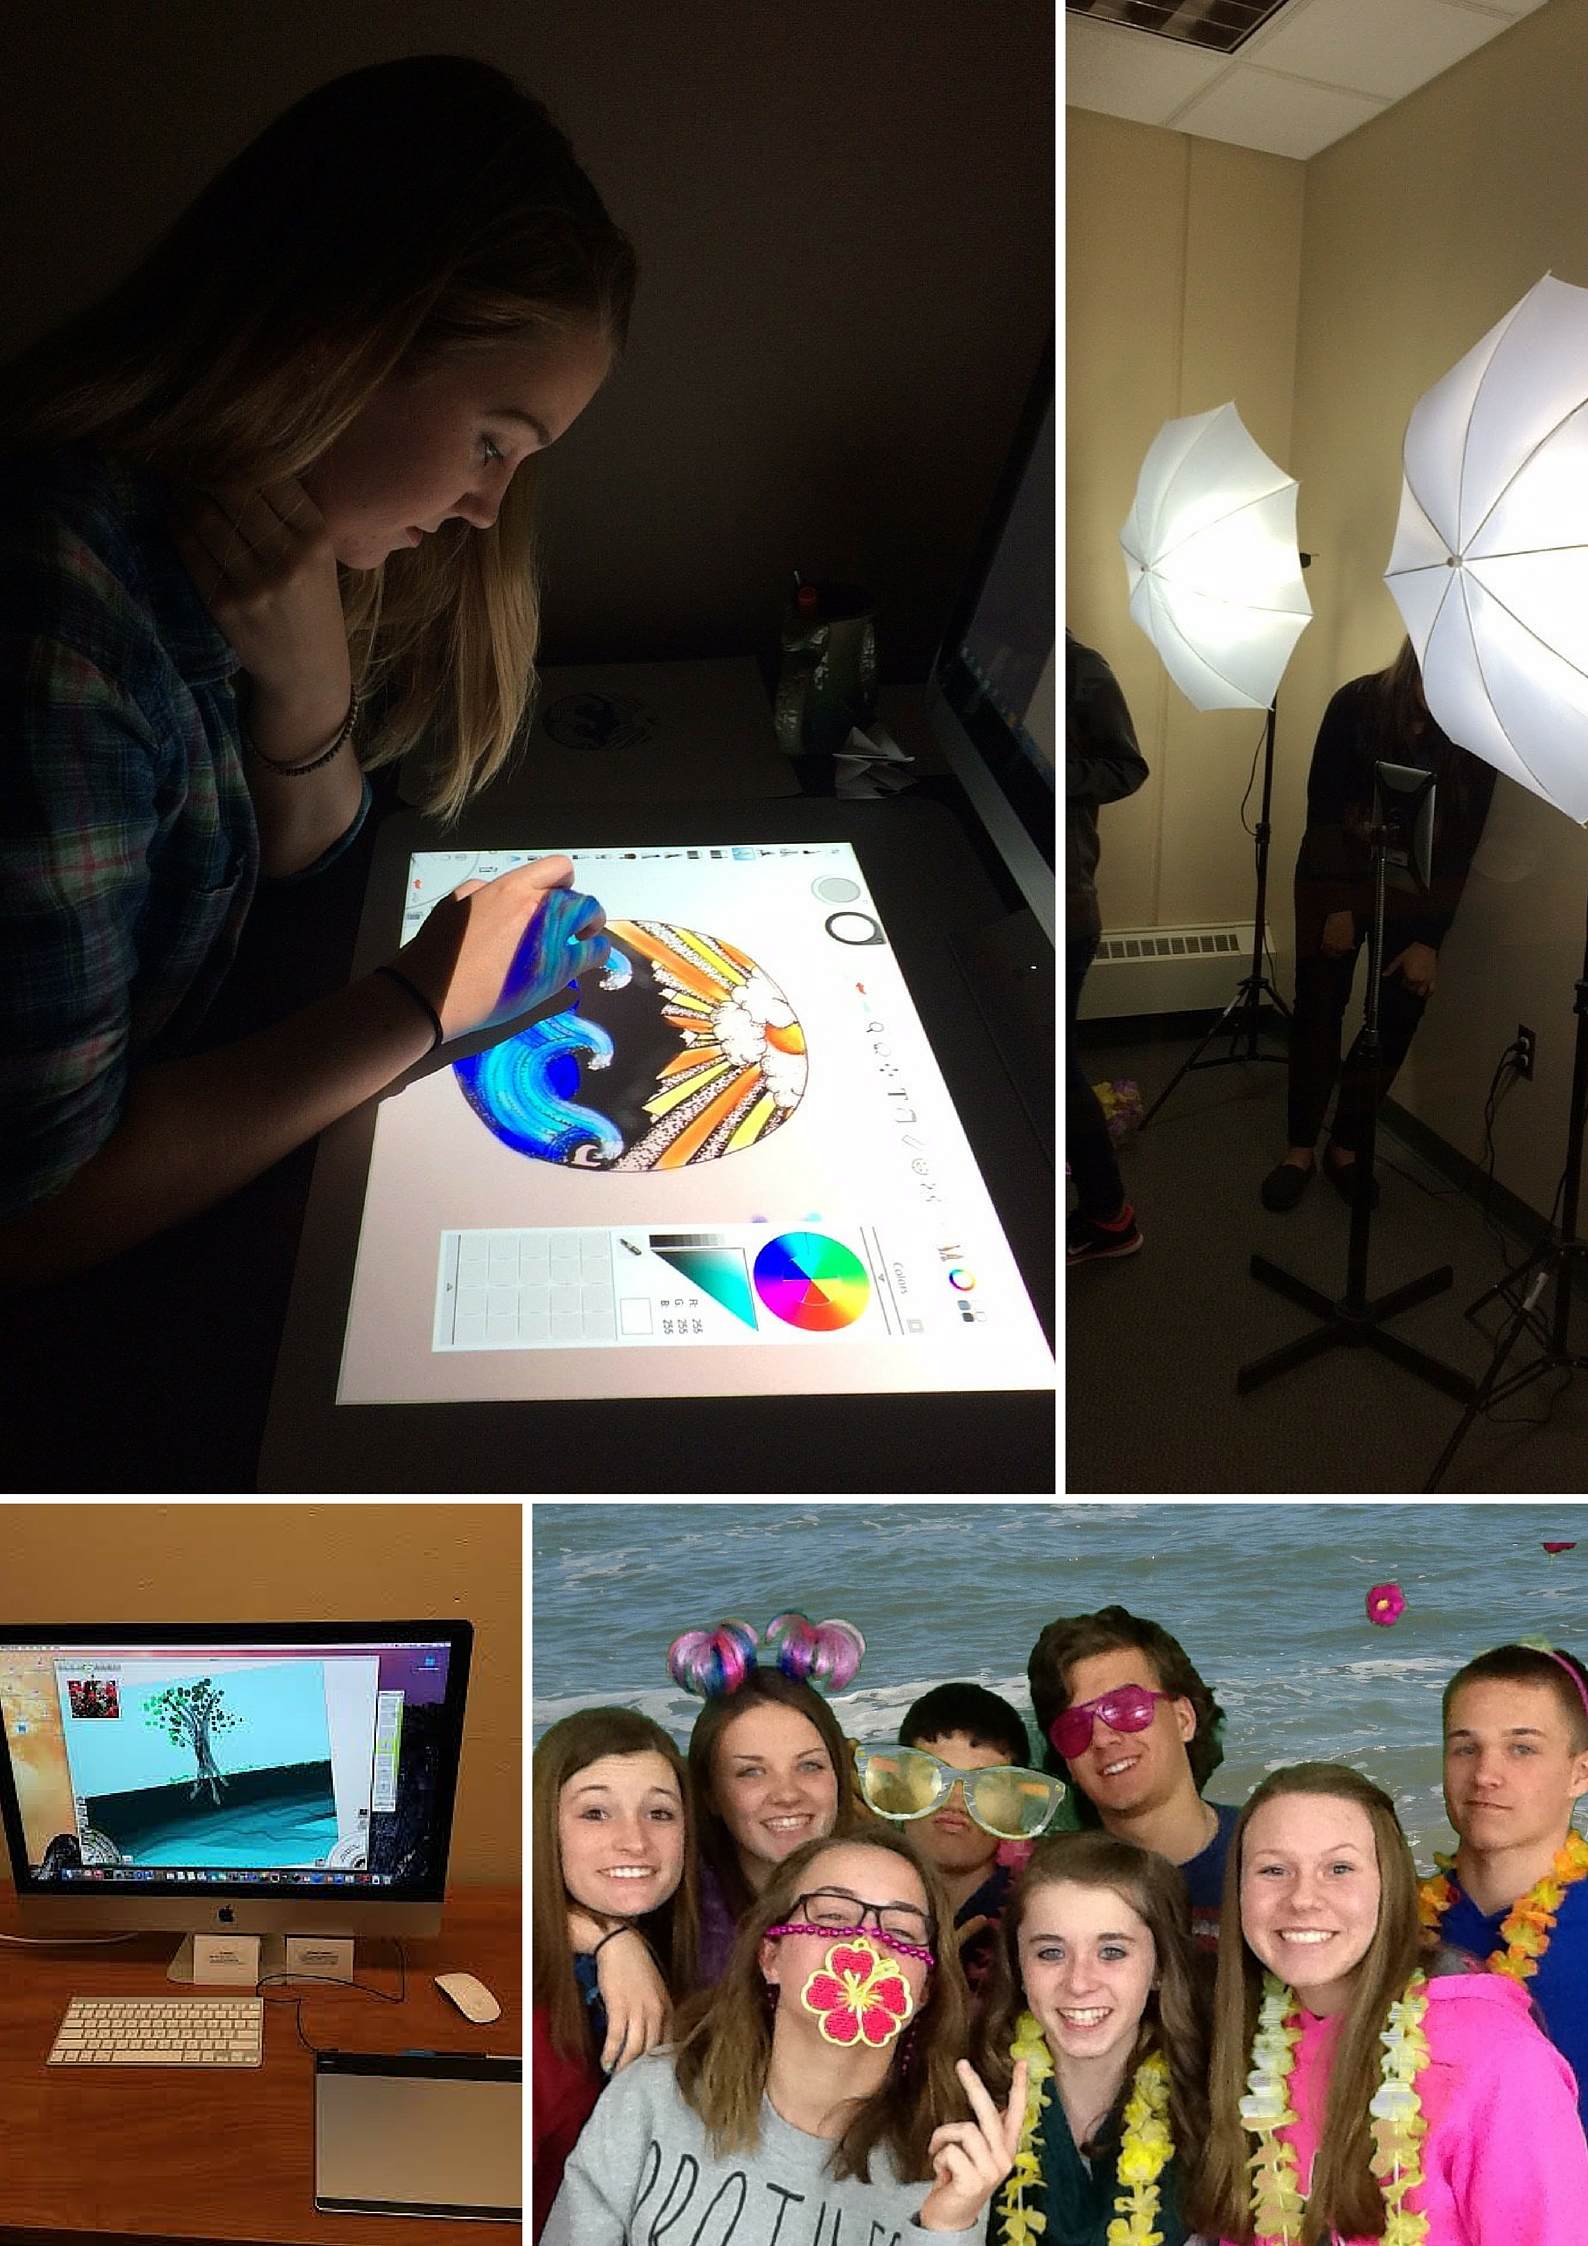 1. Student working on 3D drawing. 2. Camera lighing. 3. iMac computer. 4. Students using green screen.